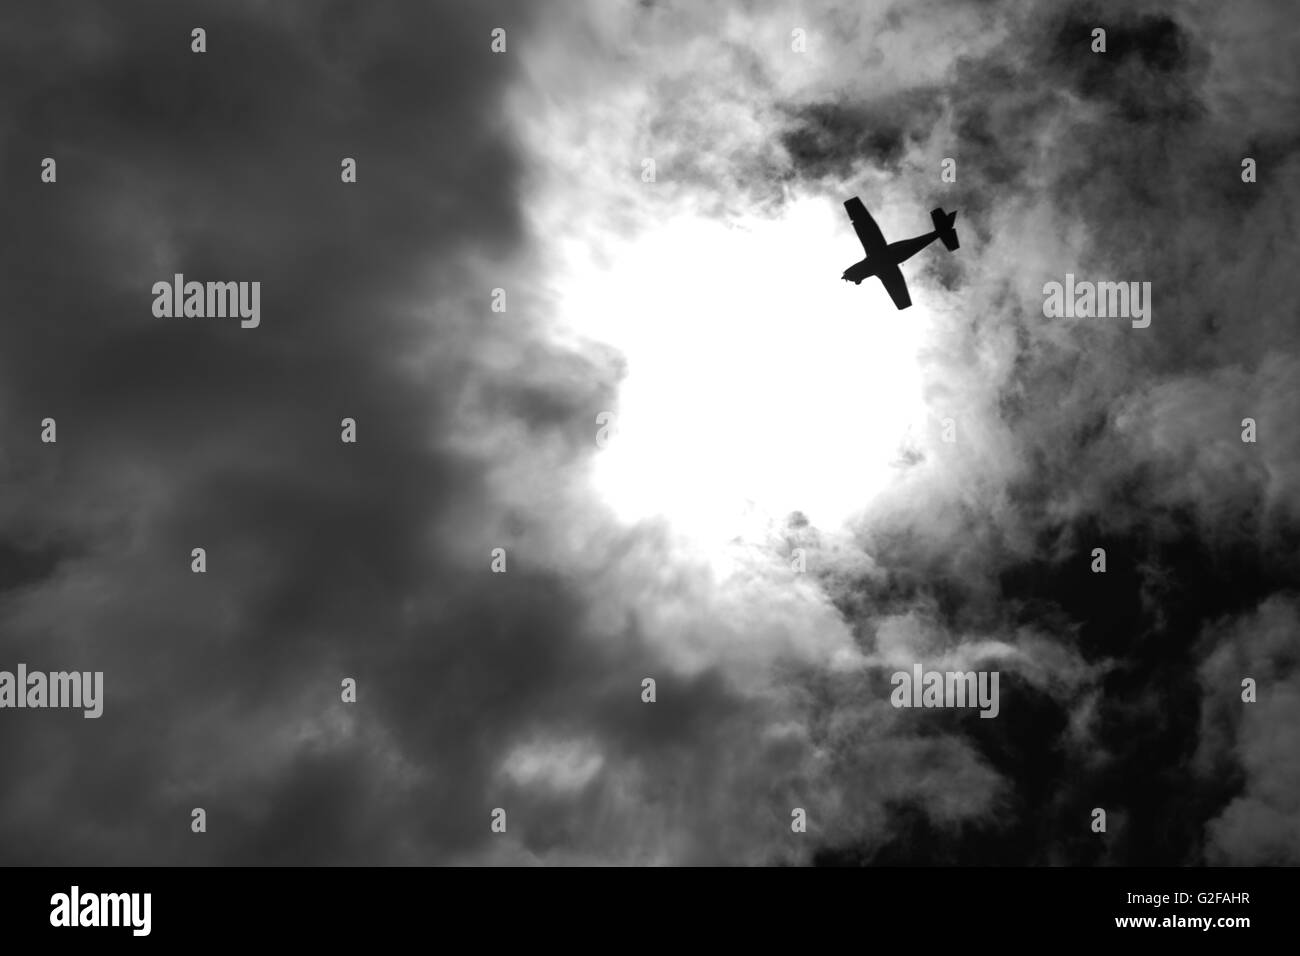 Airplane Silhouette Against Dramatic Sky, Low Angle View - Stock Image